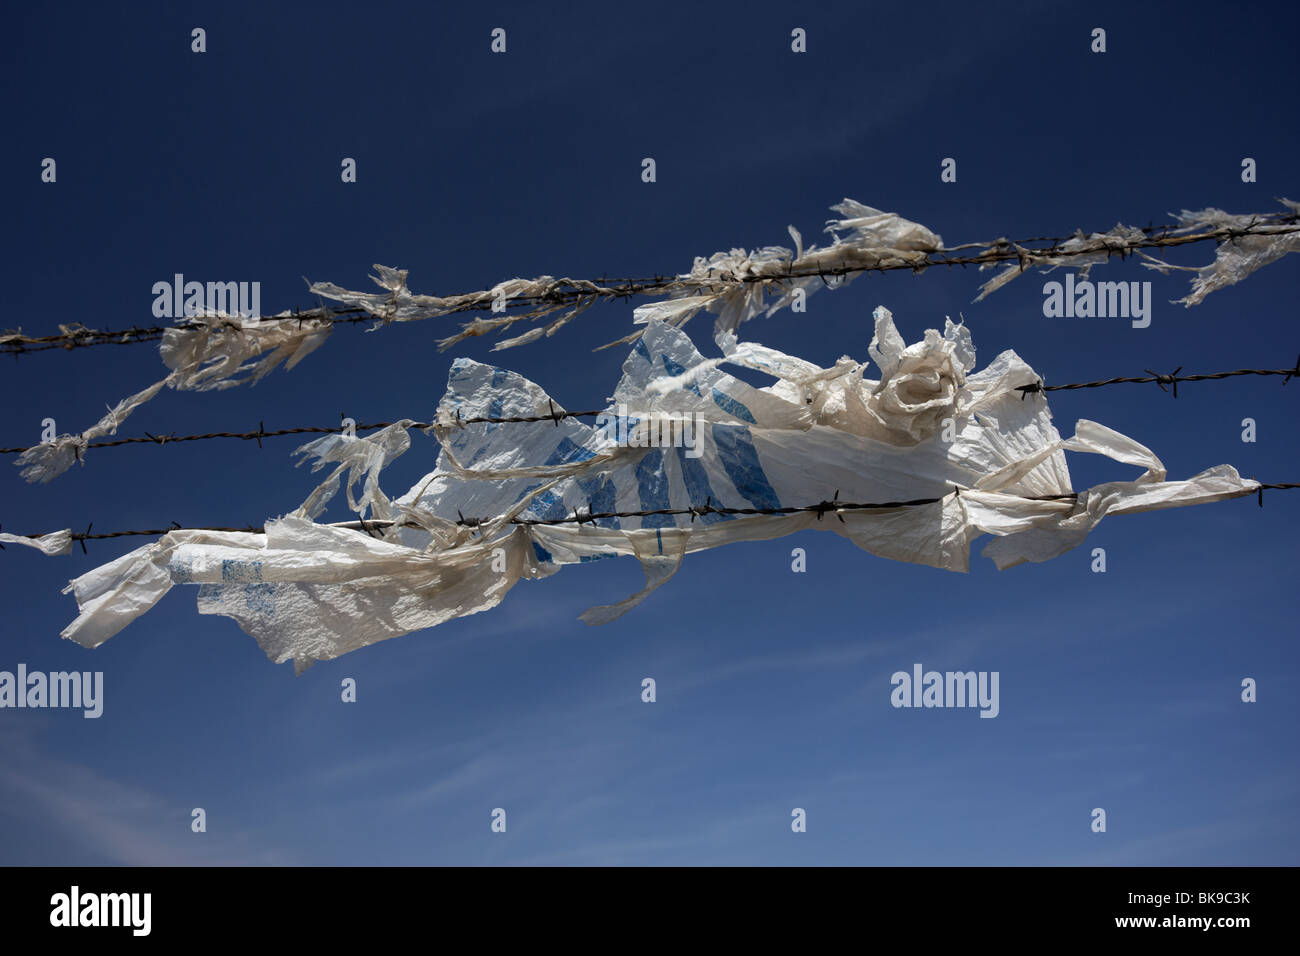 old discarded plastic carrier bag rotting and torn blowing in the wind caught by barbed wire fence - Stock Image